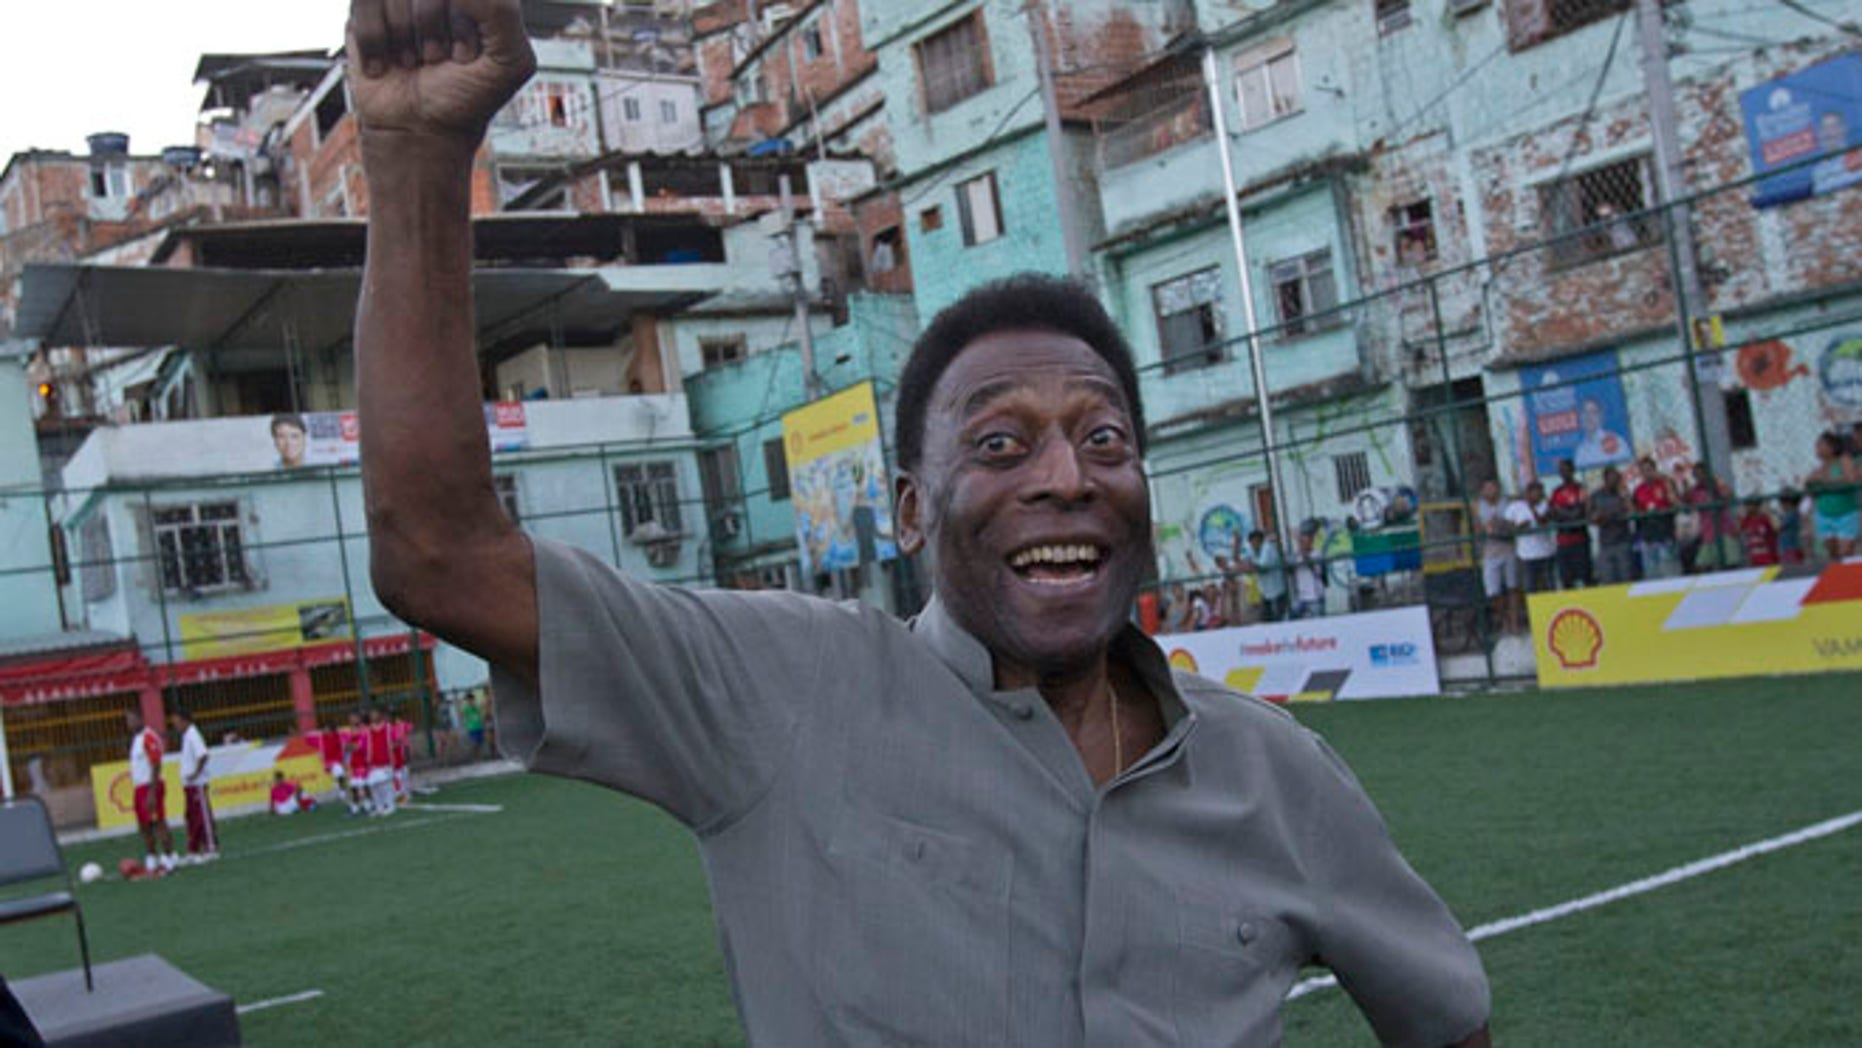 Sept. 10, 2014 Brazilian soccer great Pele pumps his fist in the air while he poses for photos during the inauguration of a soccer pitch to be powered by players' footsteps, at the Morro da Mineira favela, in Rio de Janeiro, Brazil.(AP)